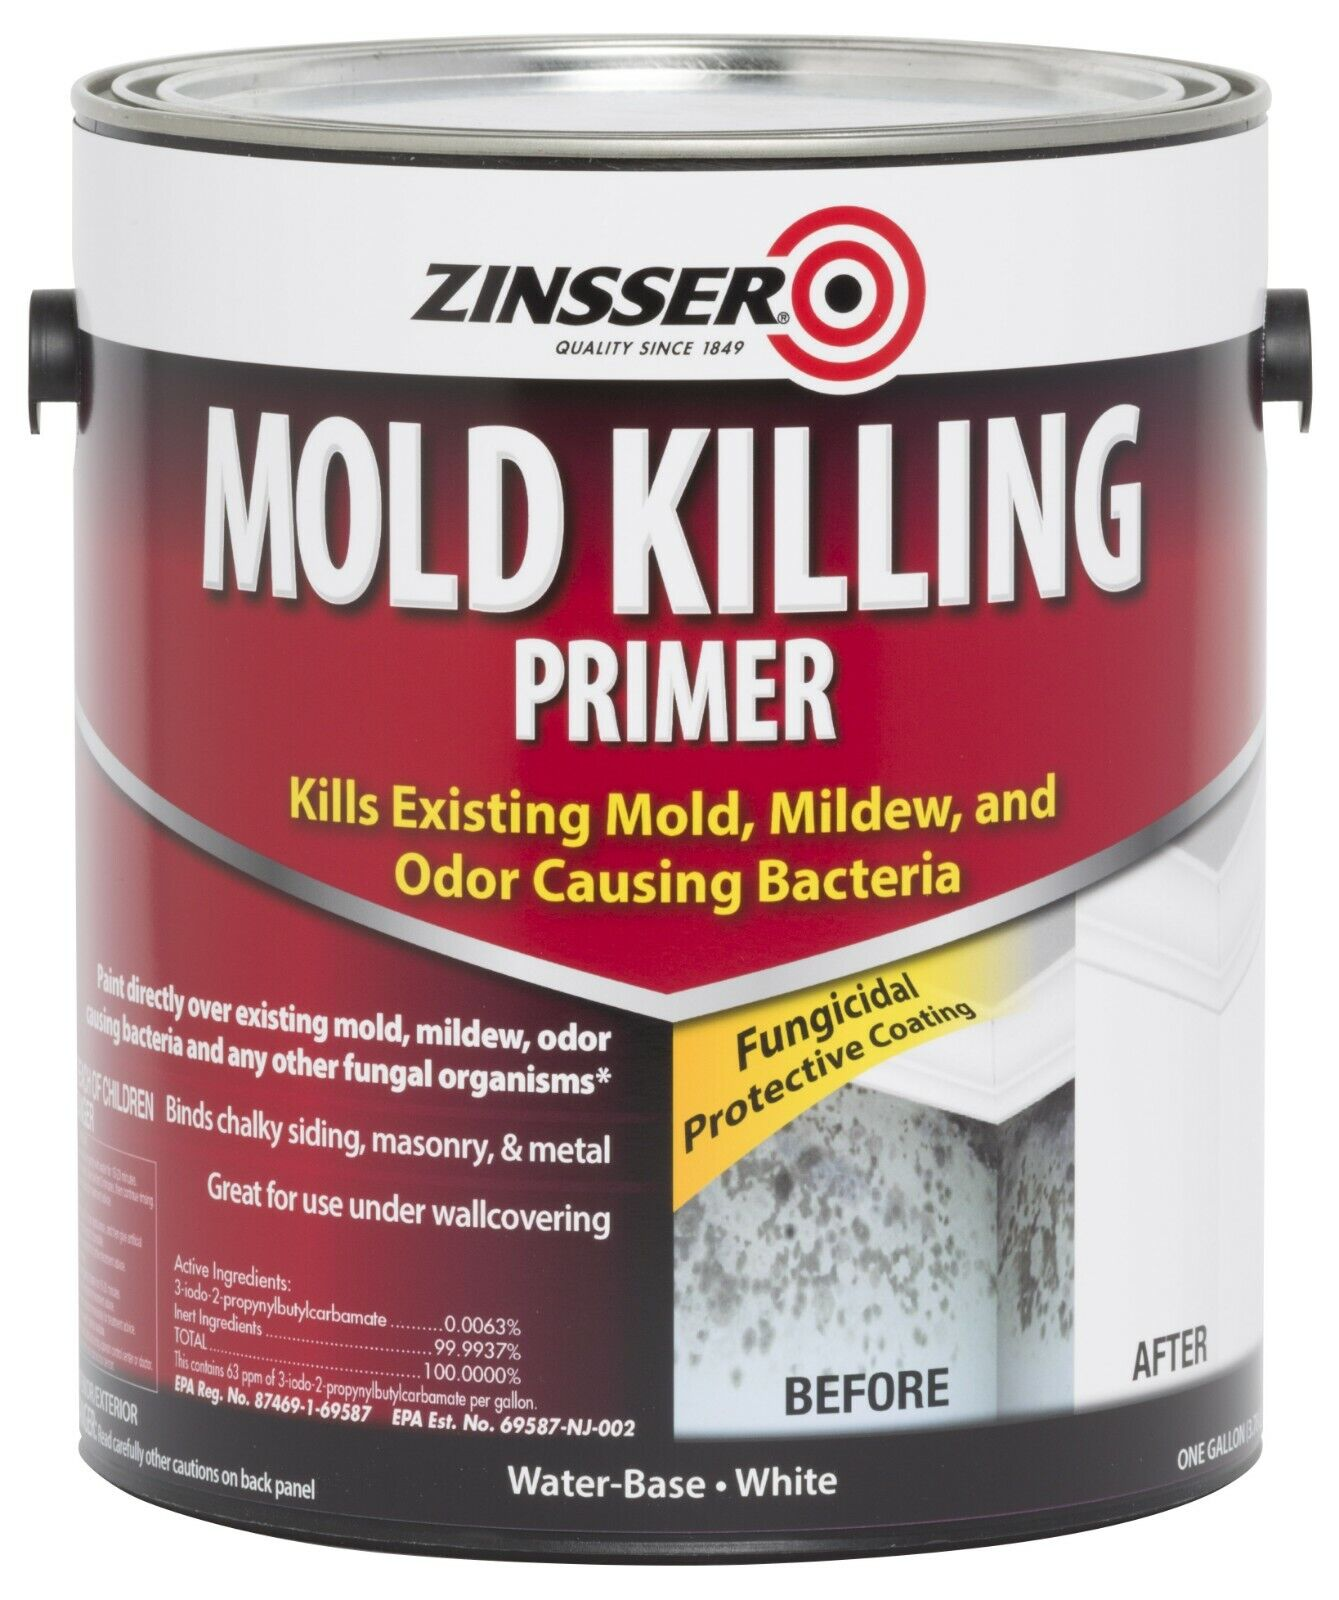 Zinsser 276049 1 Gallon Mold Killing Primer Building & Hardware